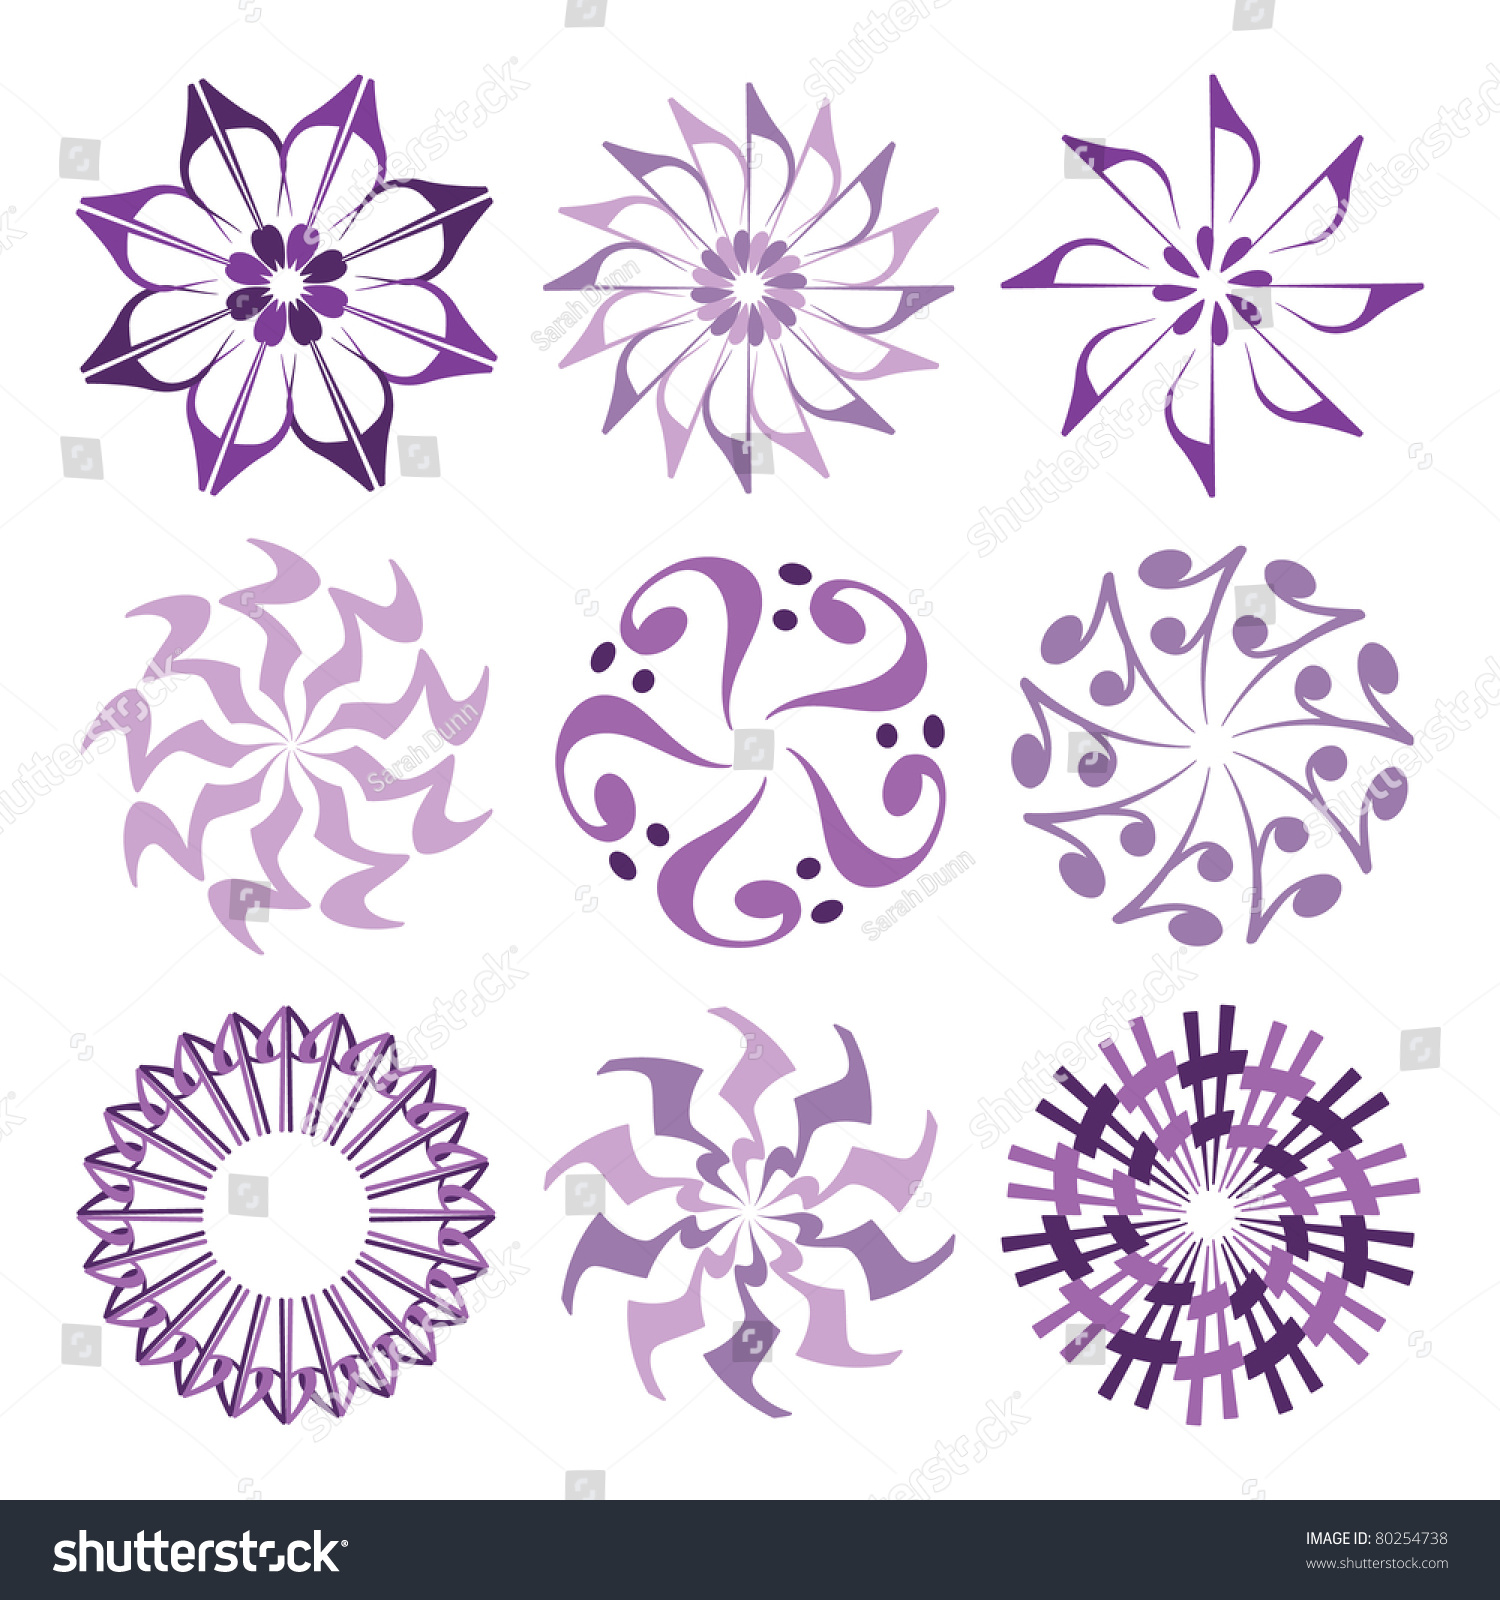 Musical flower designs floral designs made stock vector 80254738 musical flower designs floral designs made from music signs and symbols including crotchet bass biocorpaavc Image collections